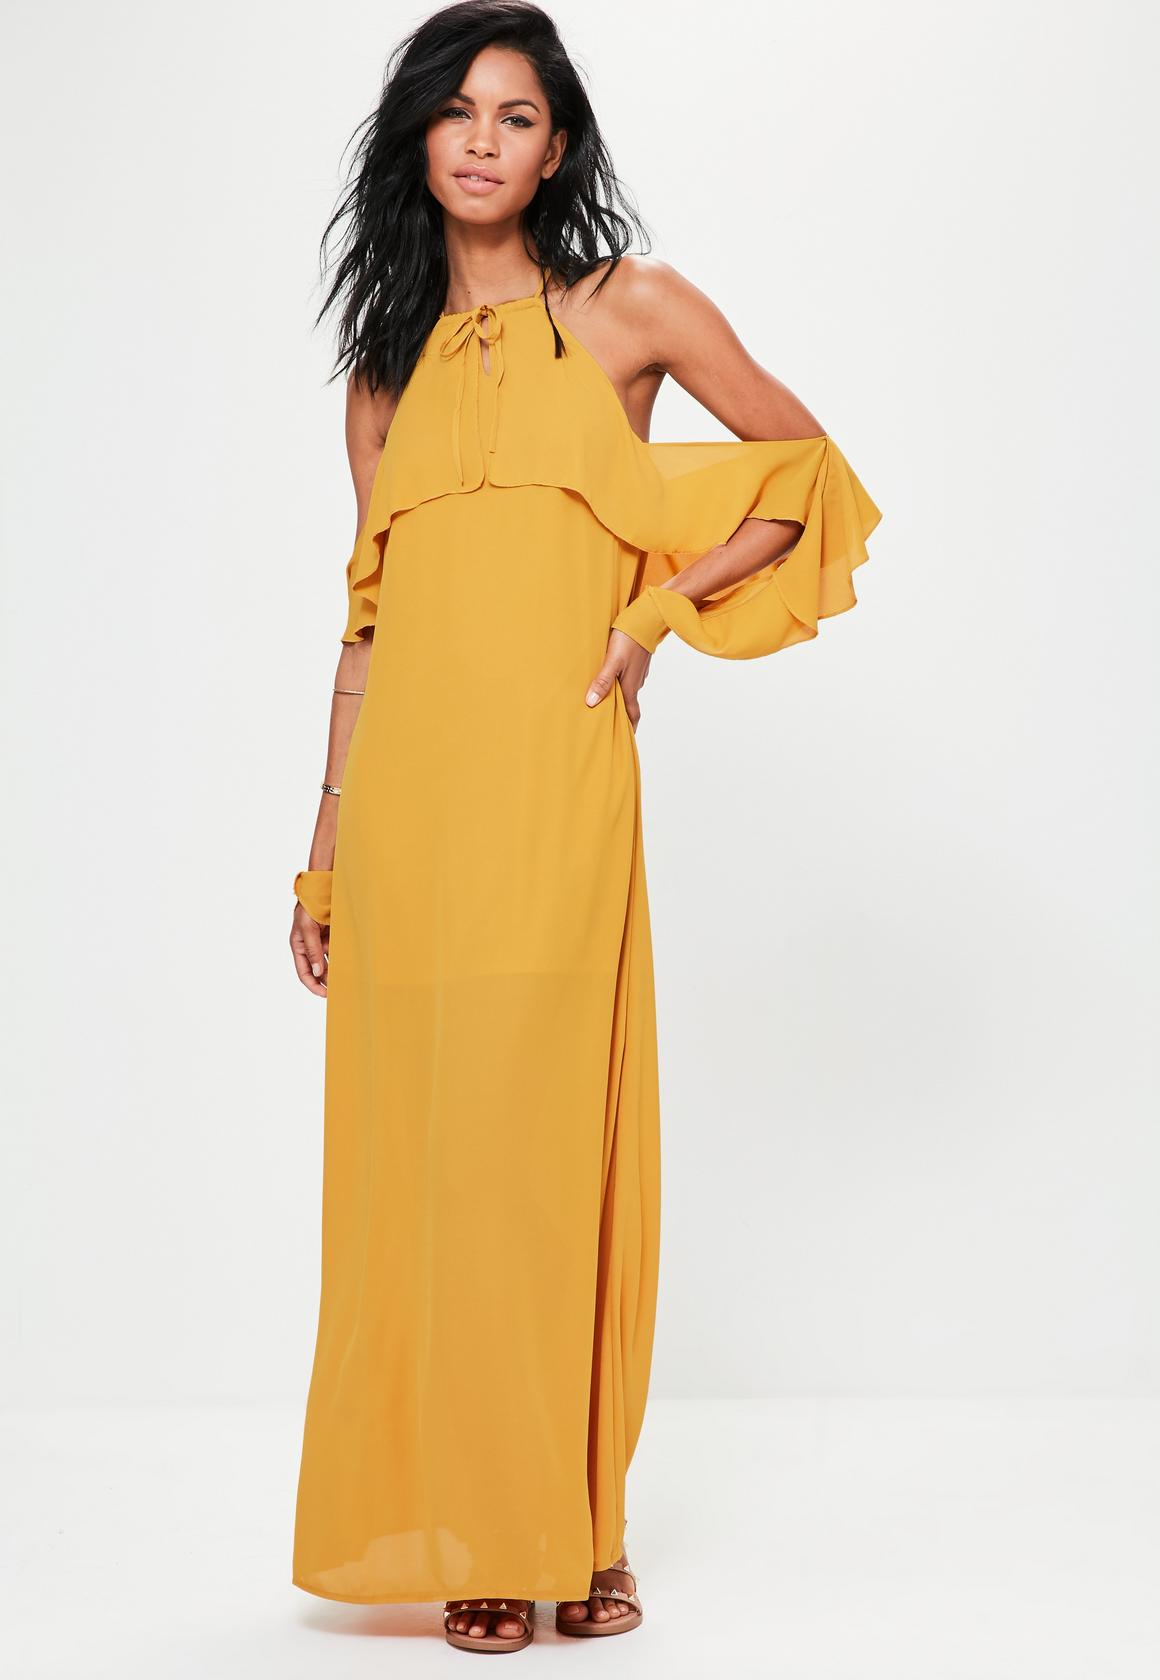 yellow maxi dress previous next DNZCJOA